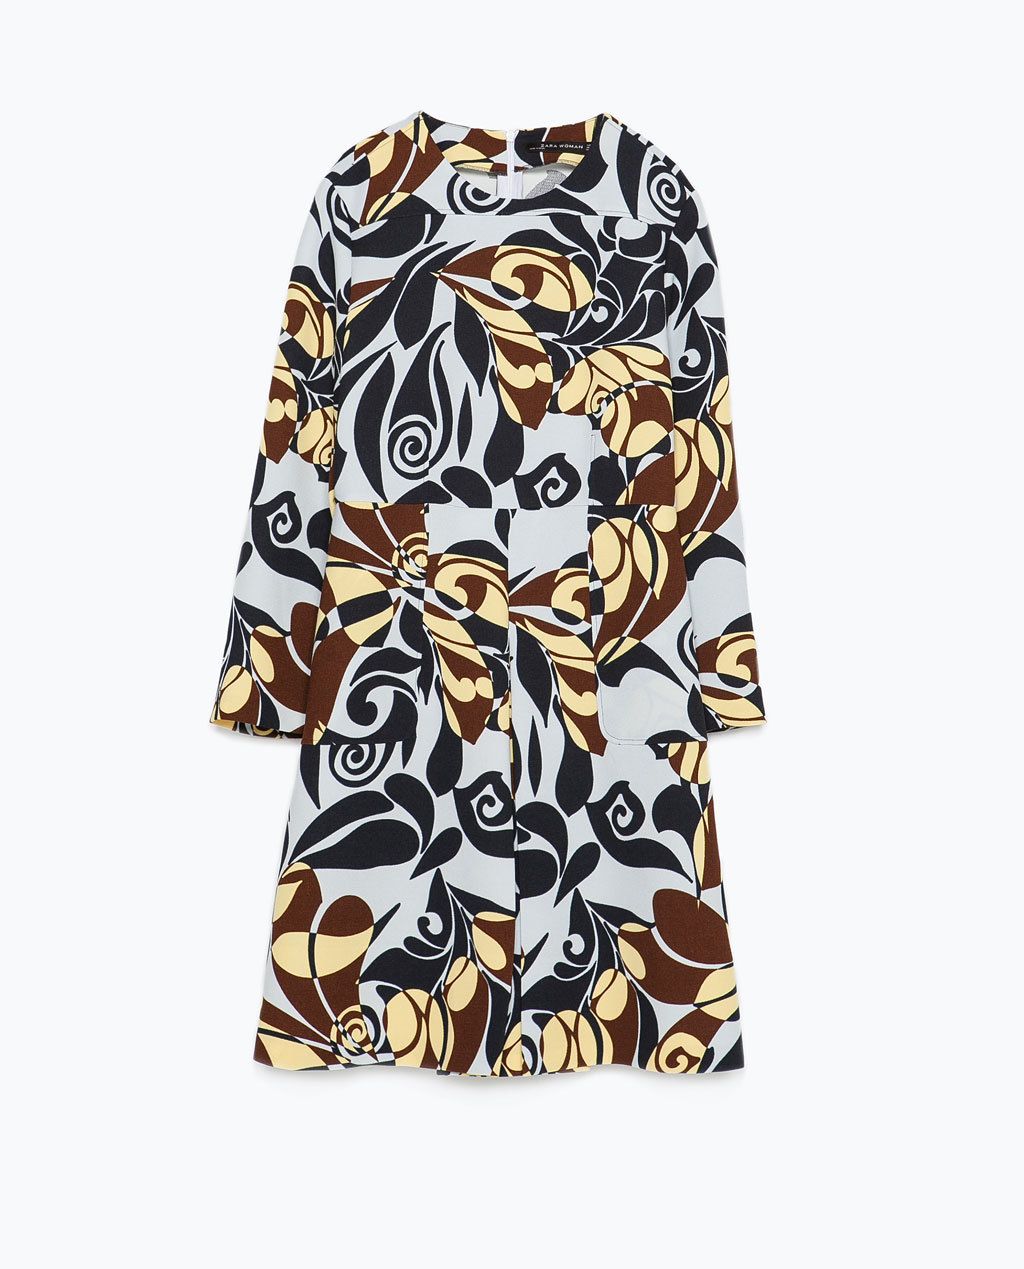 Printed Dress - style: shift; length: mid thigh; occasions: casual, creative work; fit: soft a-line; neckline: crew; predominant colour: multicoloured; sleeve length: long sleeve; sleeve style: standard; pattern type: fabric; pattern: florals; texture group: woven light midweight; season: s/s 2015; multicoloured: multicoloured